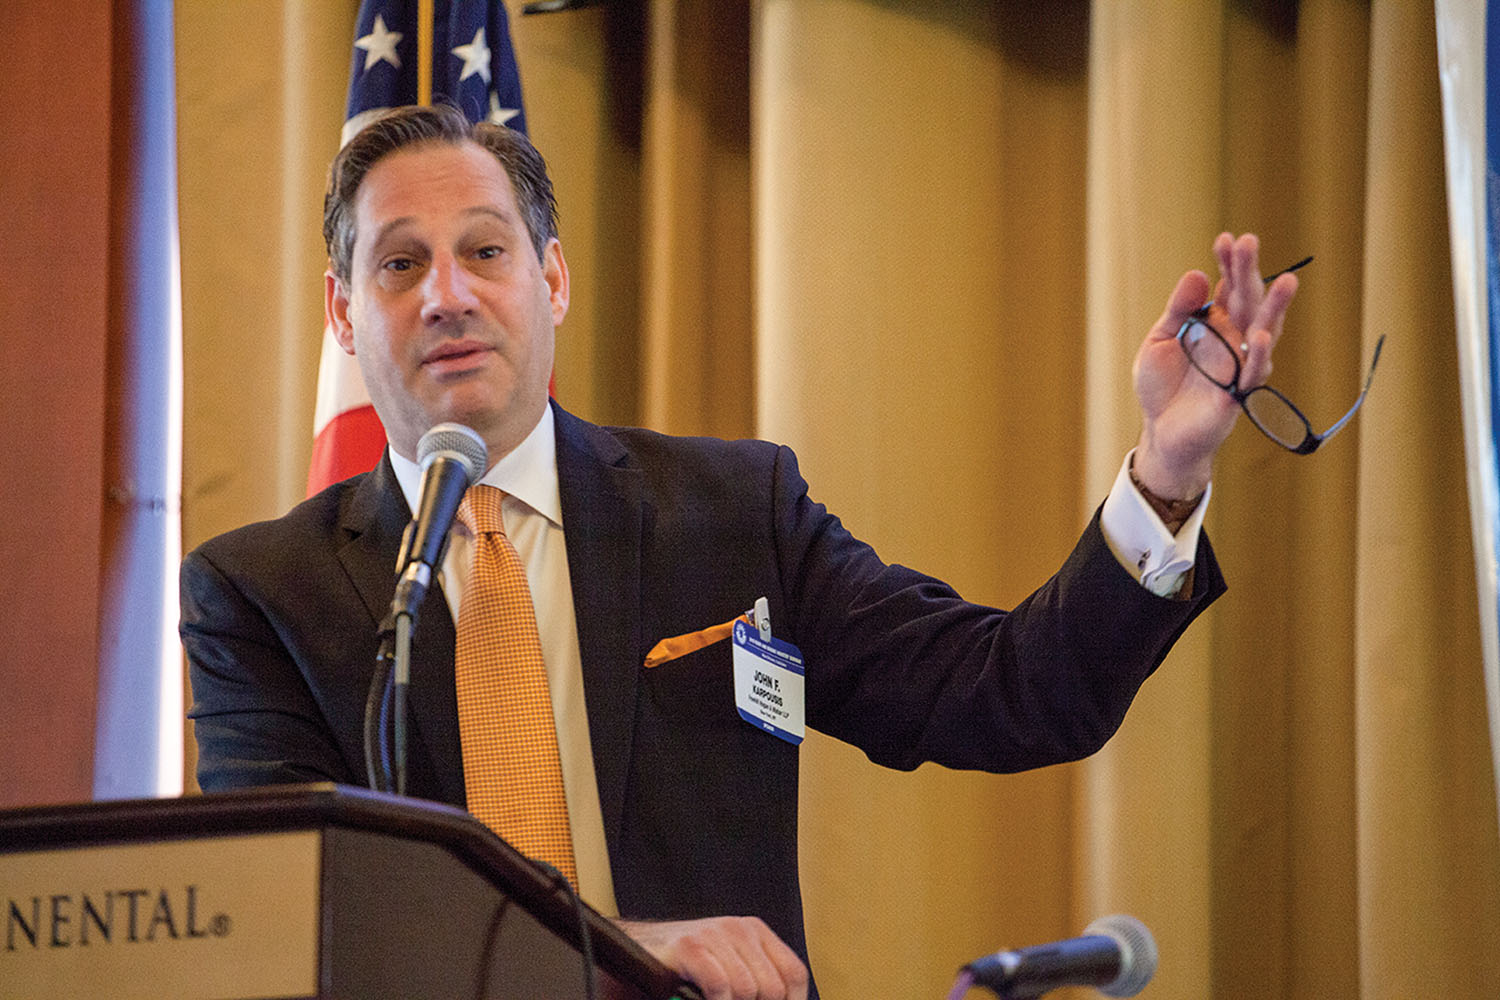 Attorney John Karpousis gestures as he makes a point. (Photo by David Murray)